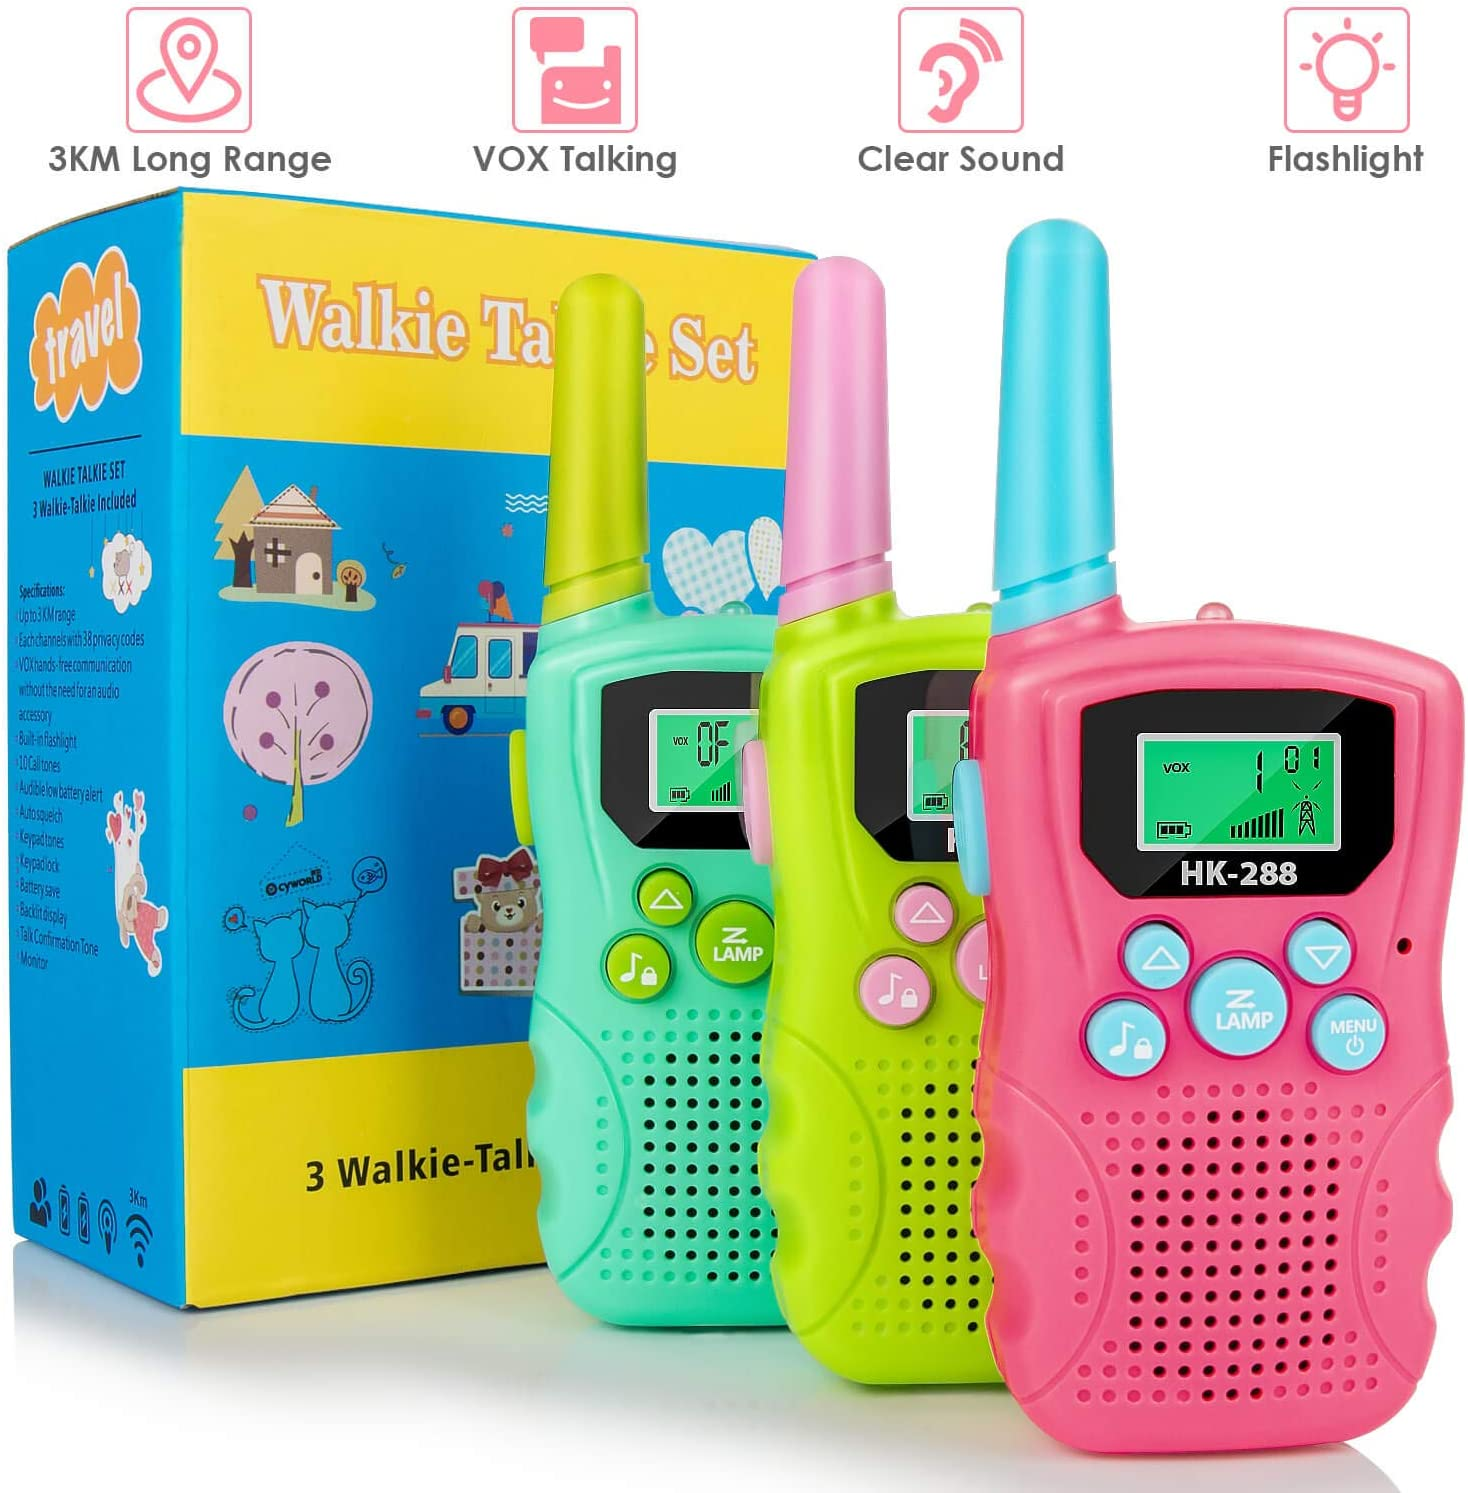 Walkie Talkies for Kids 3 Pack, 22 Channels 2 Way Radio 3km Long Range VOX Talking with Flashlight, Kids Walkie-talkies Handheld Interphone for Age 3-12 Year Old Boys Girls Outdoor Camping Hiking